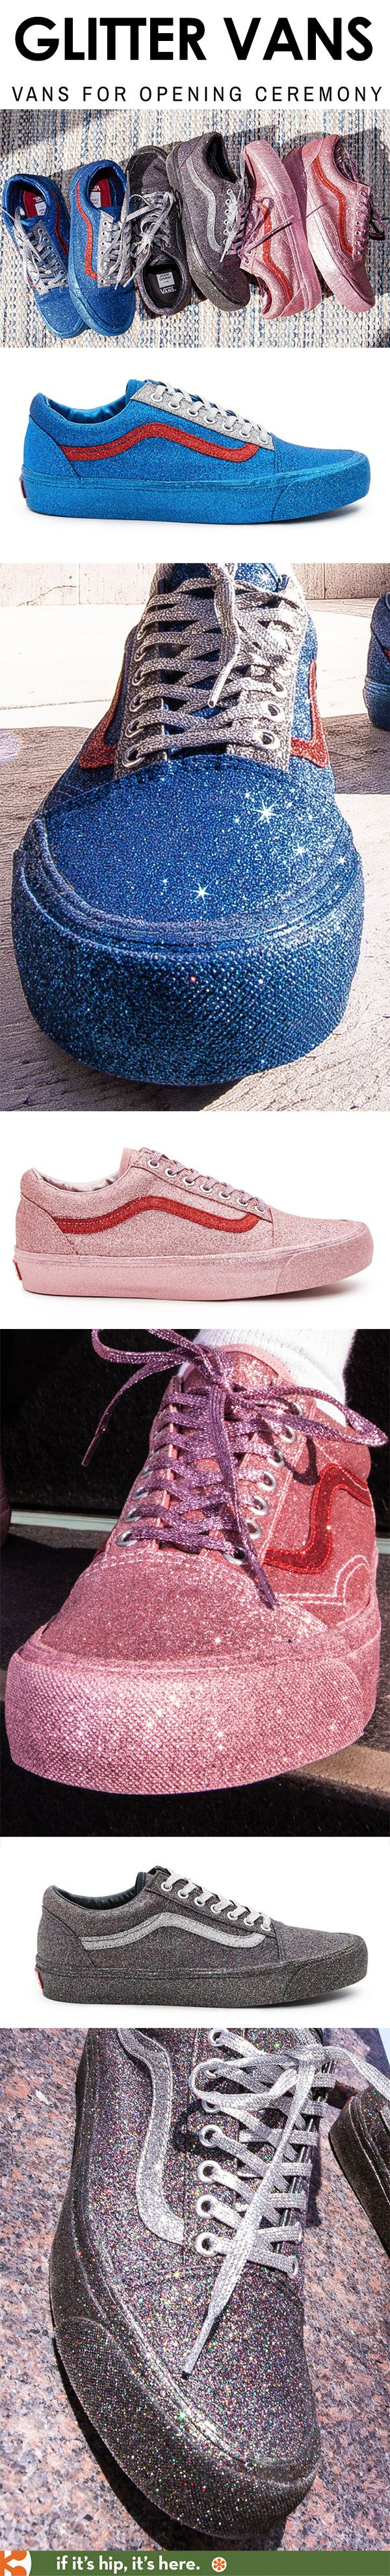 Hellz yeah! Old Skool Glitter Vans for Opening Ceremony